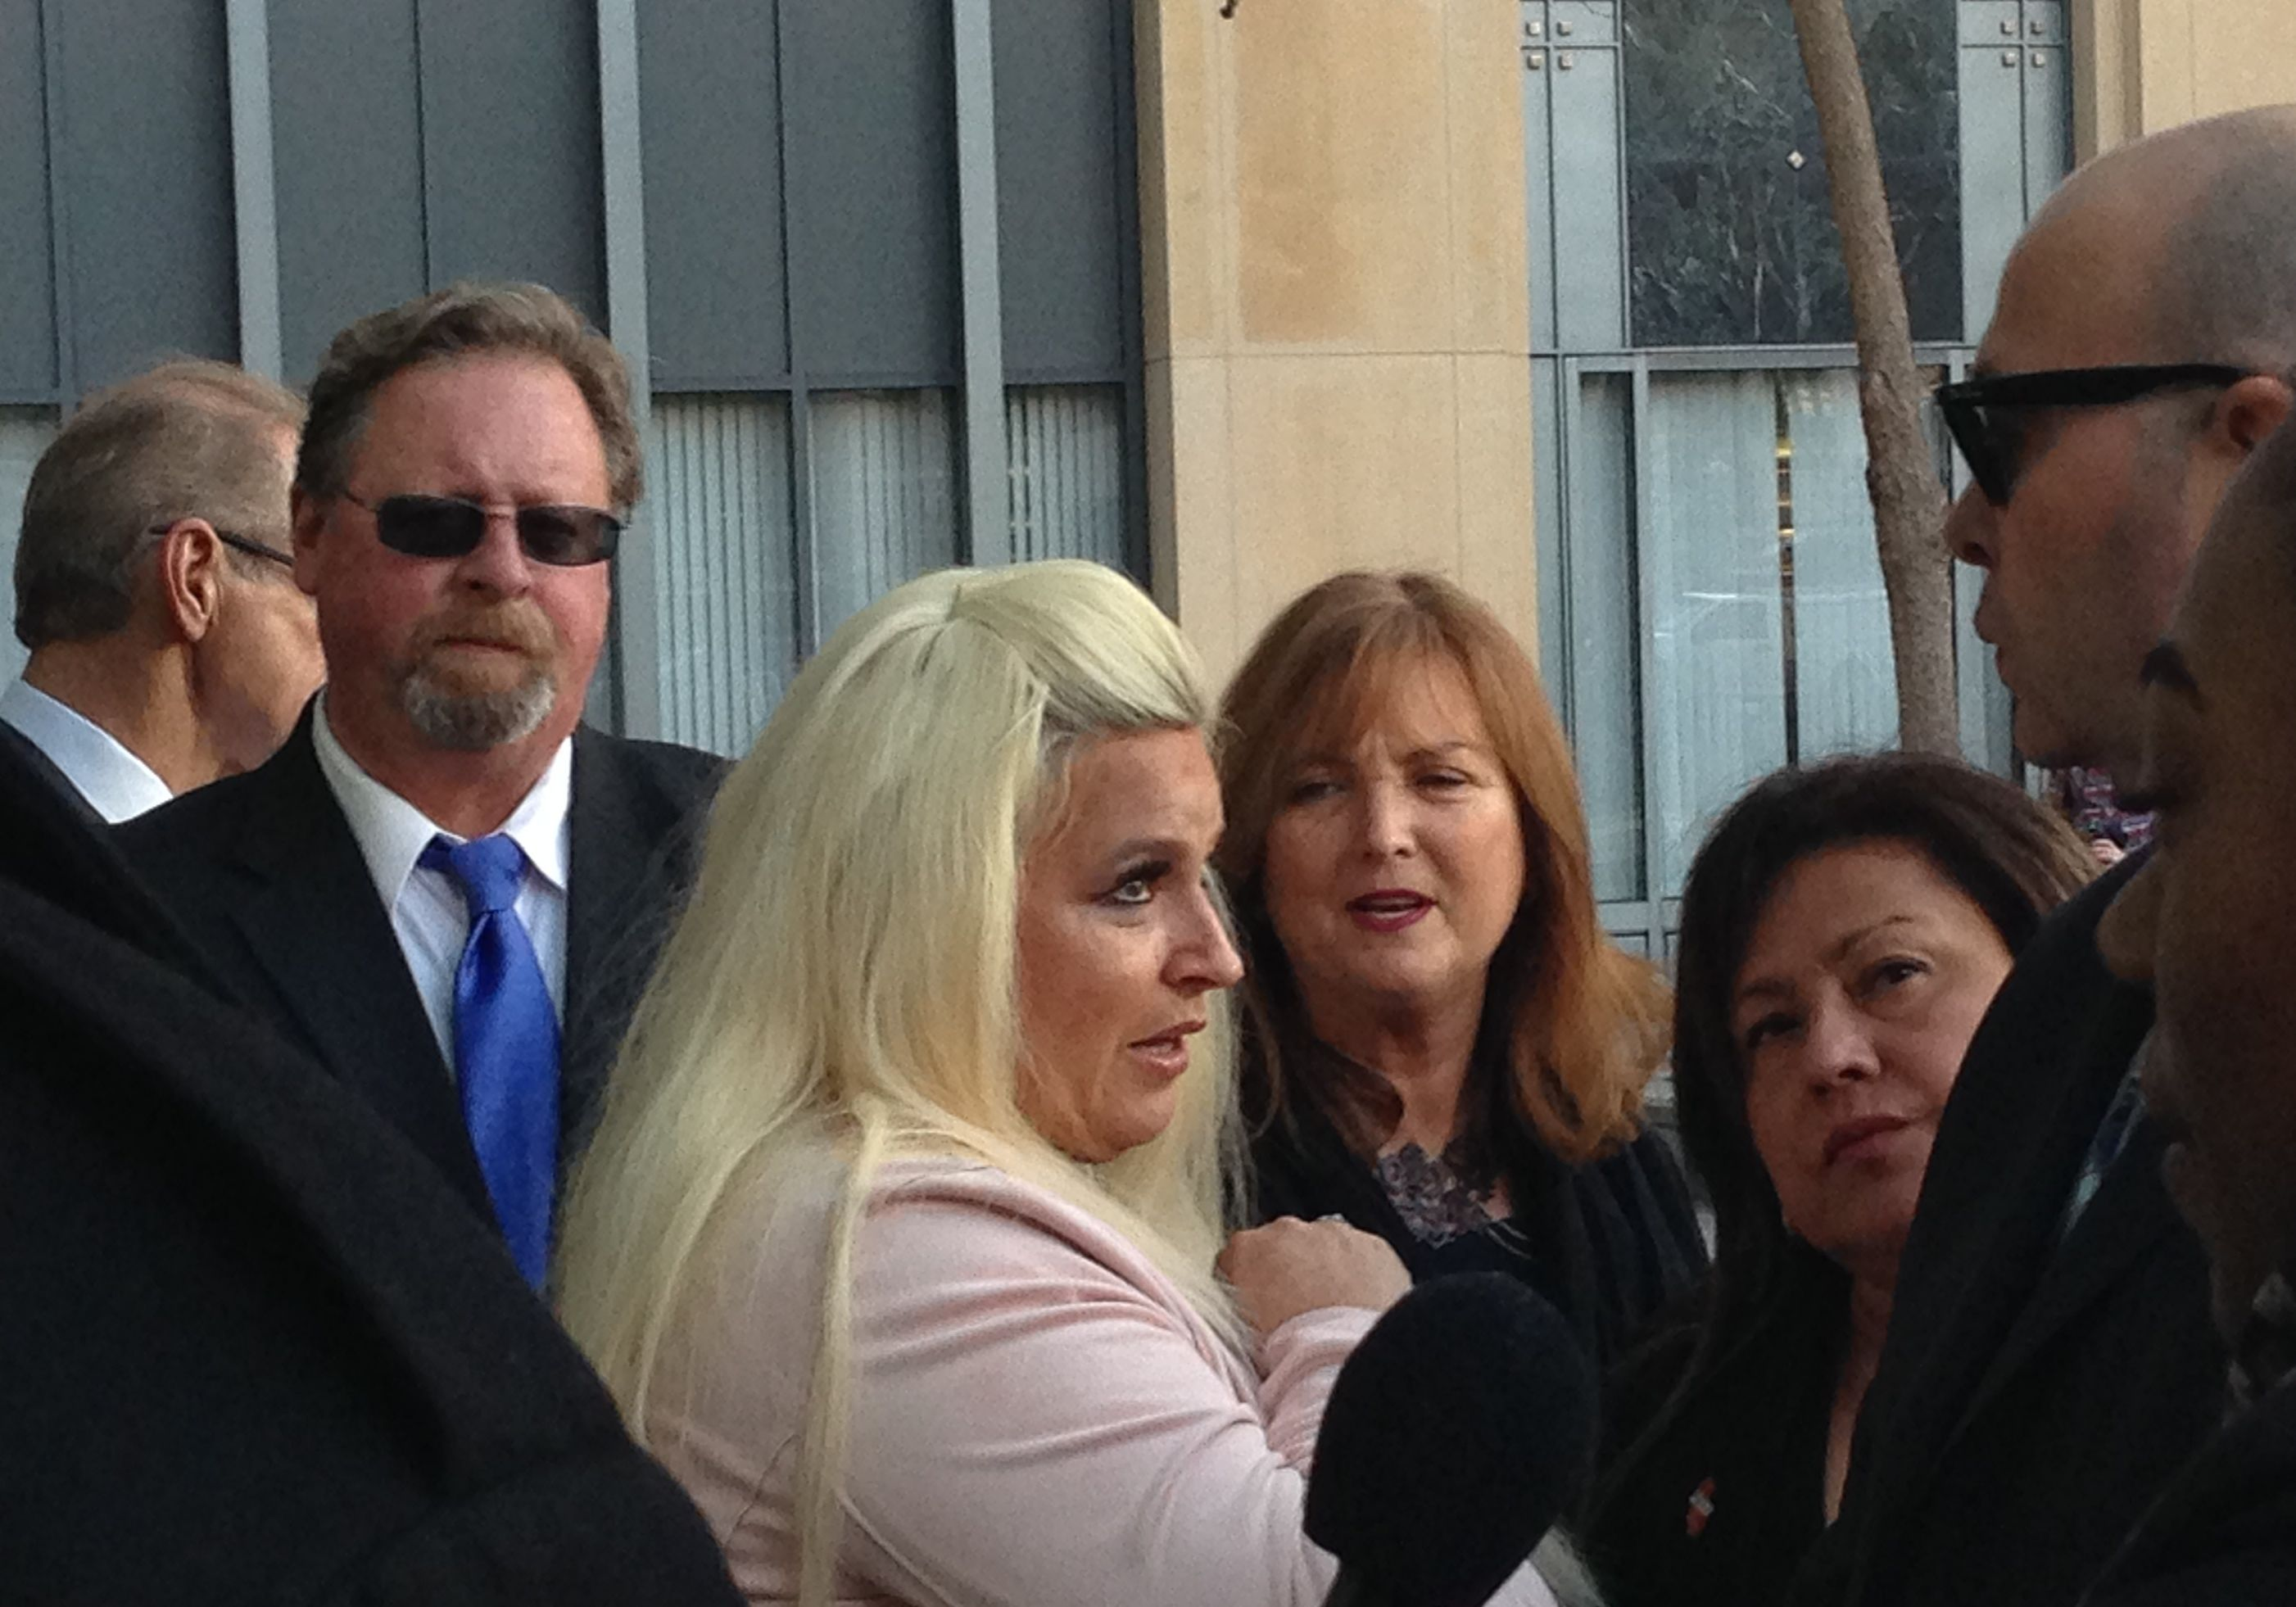 Beth Chapman and other bail agents showed up at Oakland's federal courthouse to defend their industry against a lawsuit challenging the constitutionality of money bail.